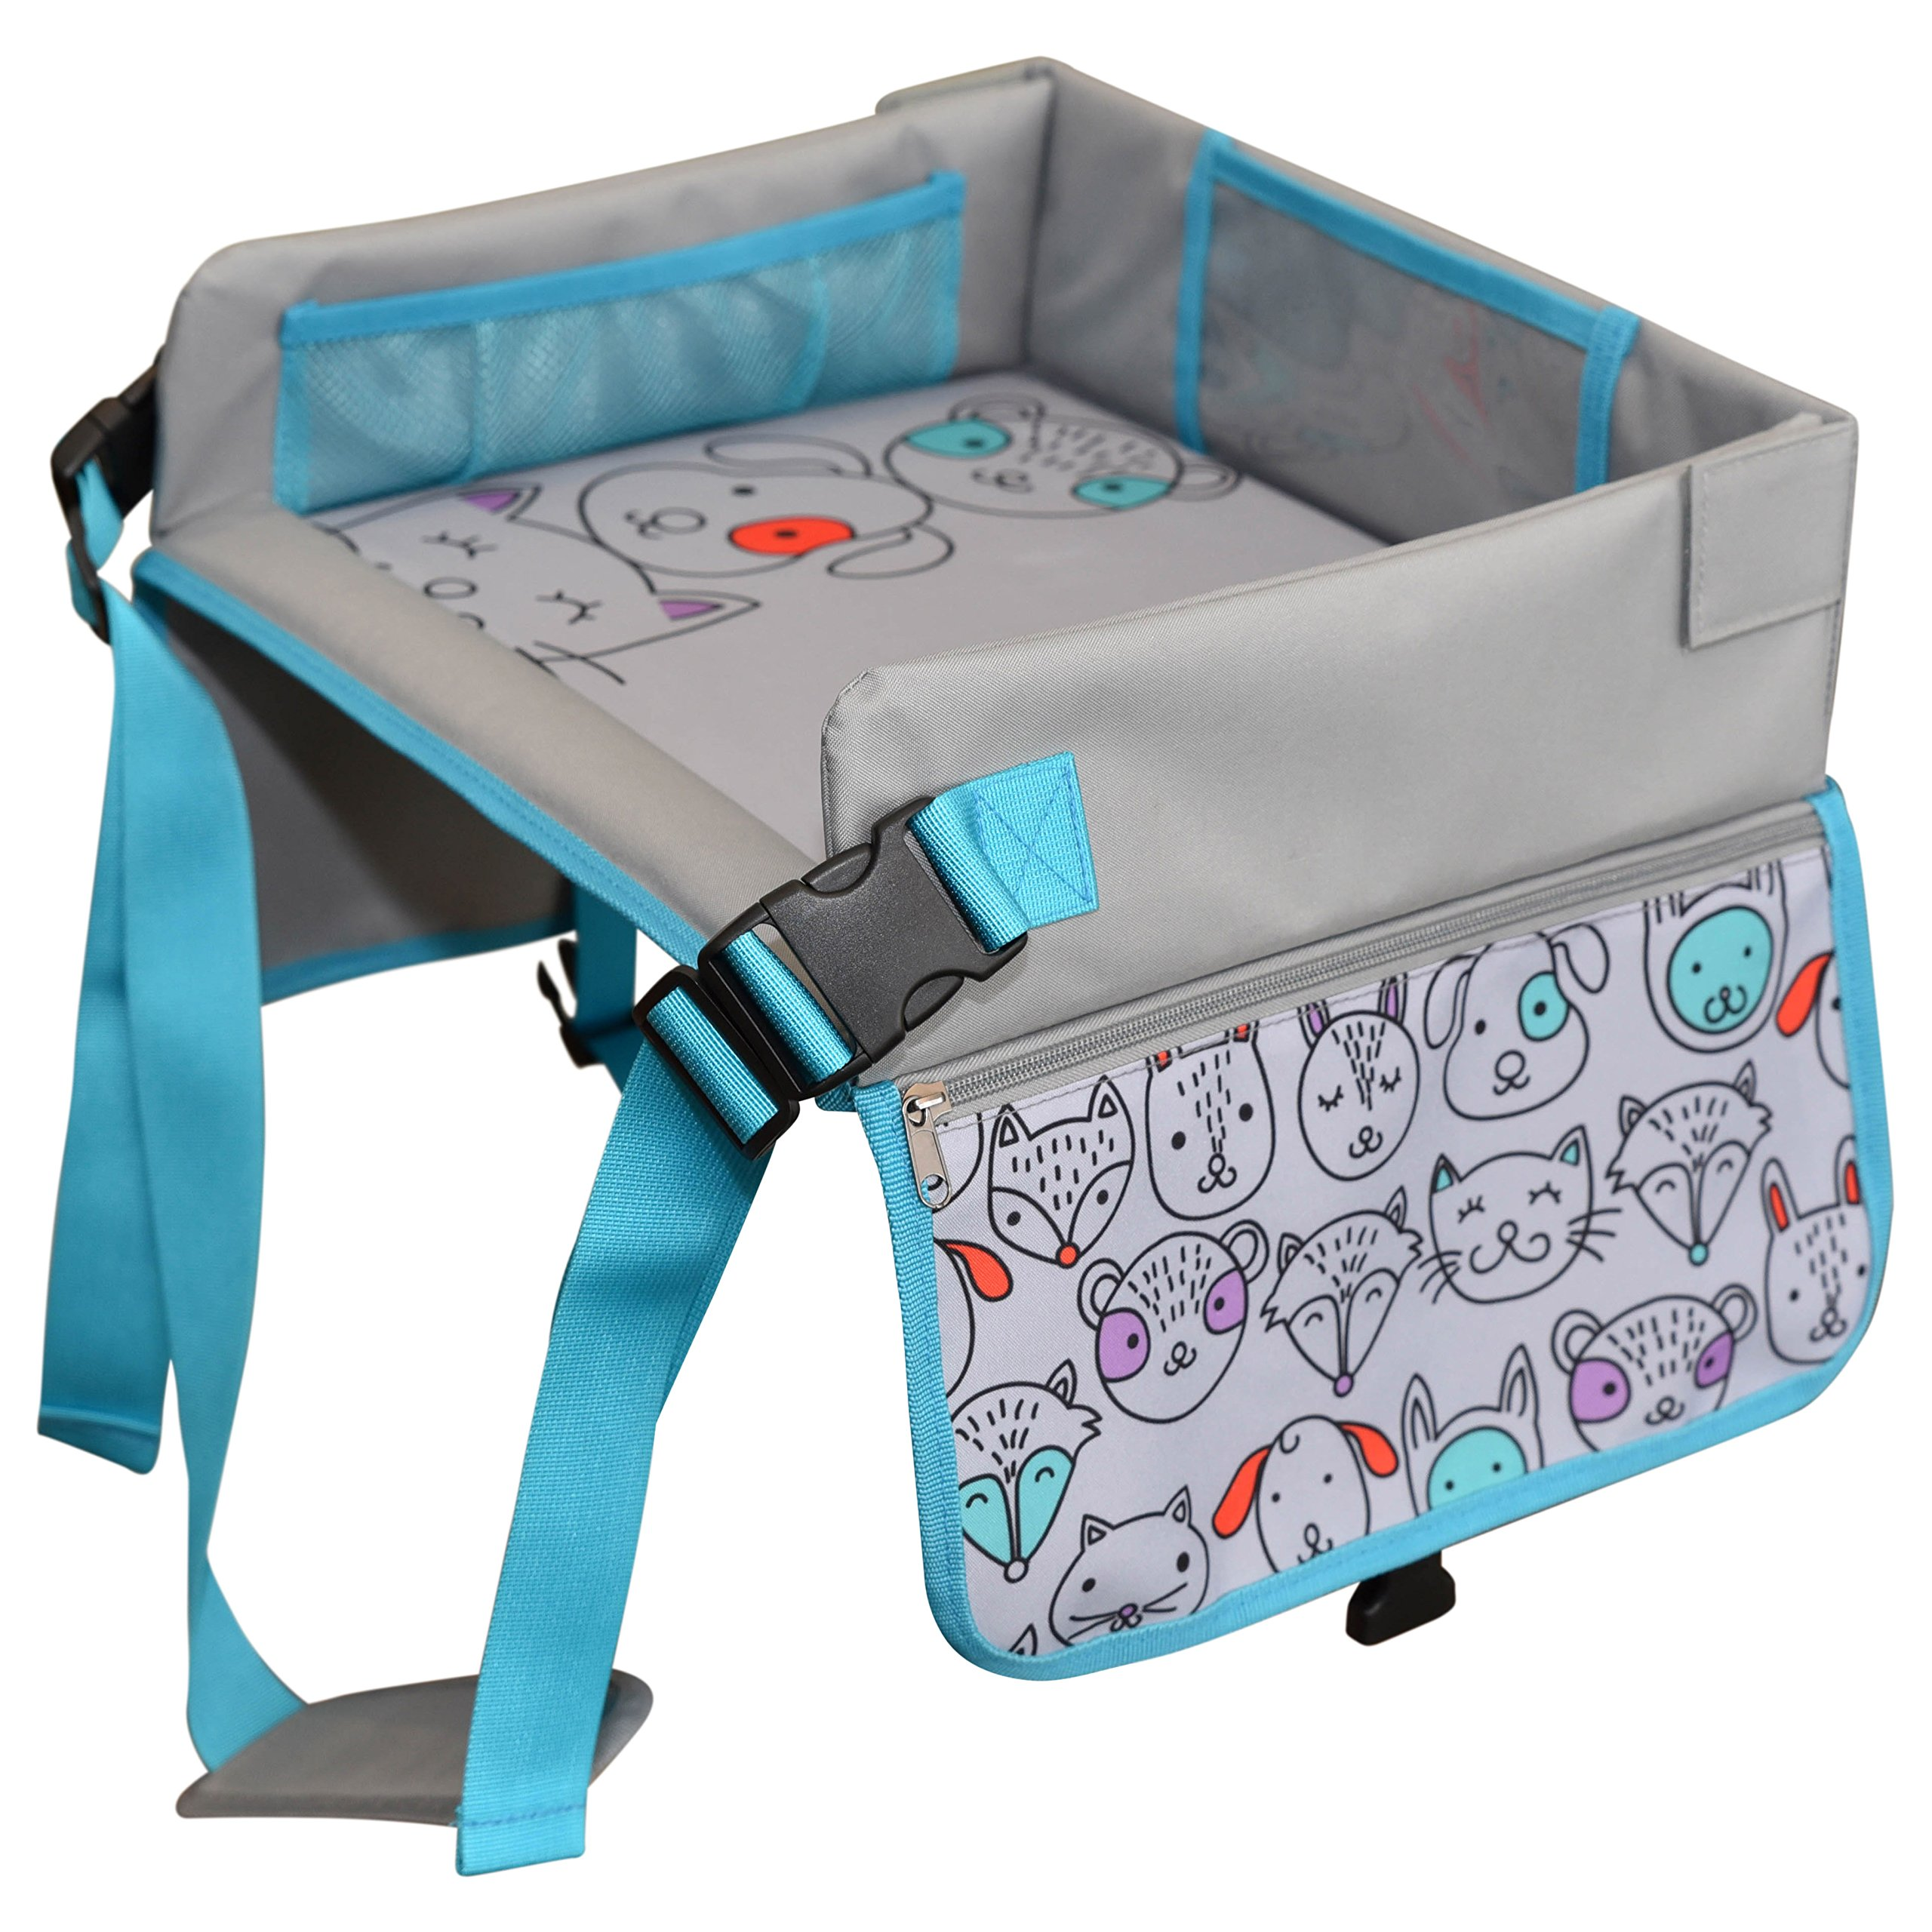 Kids Travel Tray by LillyCrafted-Premium Quality Toddler Car Seat Tray & Lap Table-with Touchscreen Phone & Tablet Holders-Toddler Activity Play & Snack Stroller Organizer-Perfect Travel Accessories by LillyCrafted